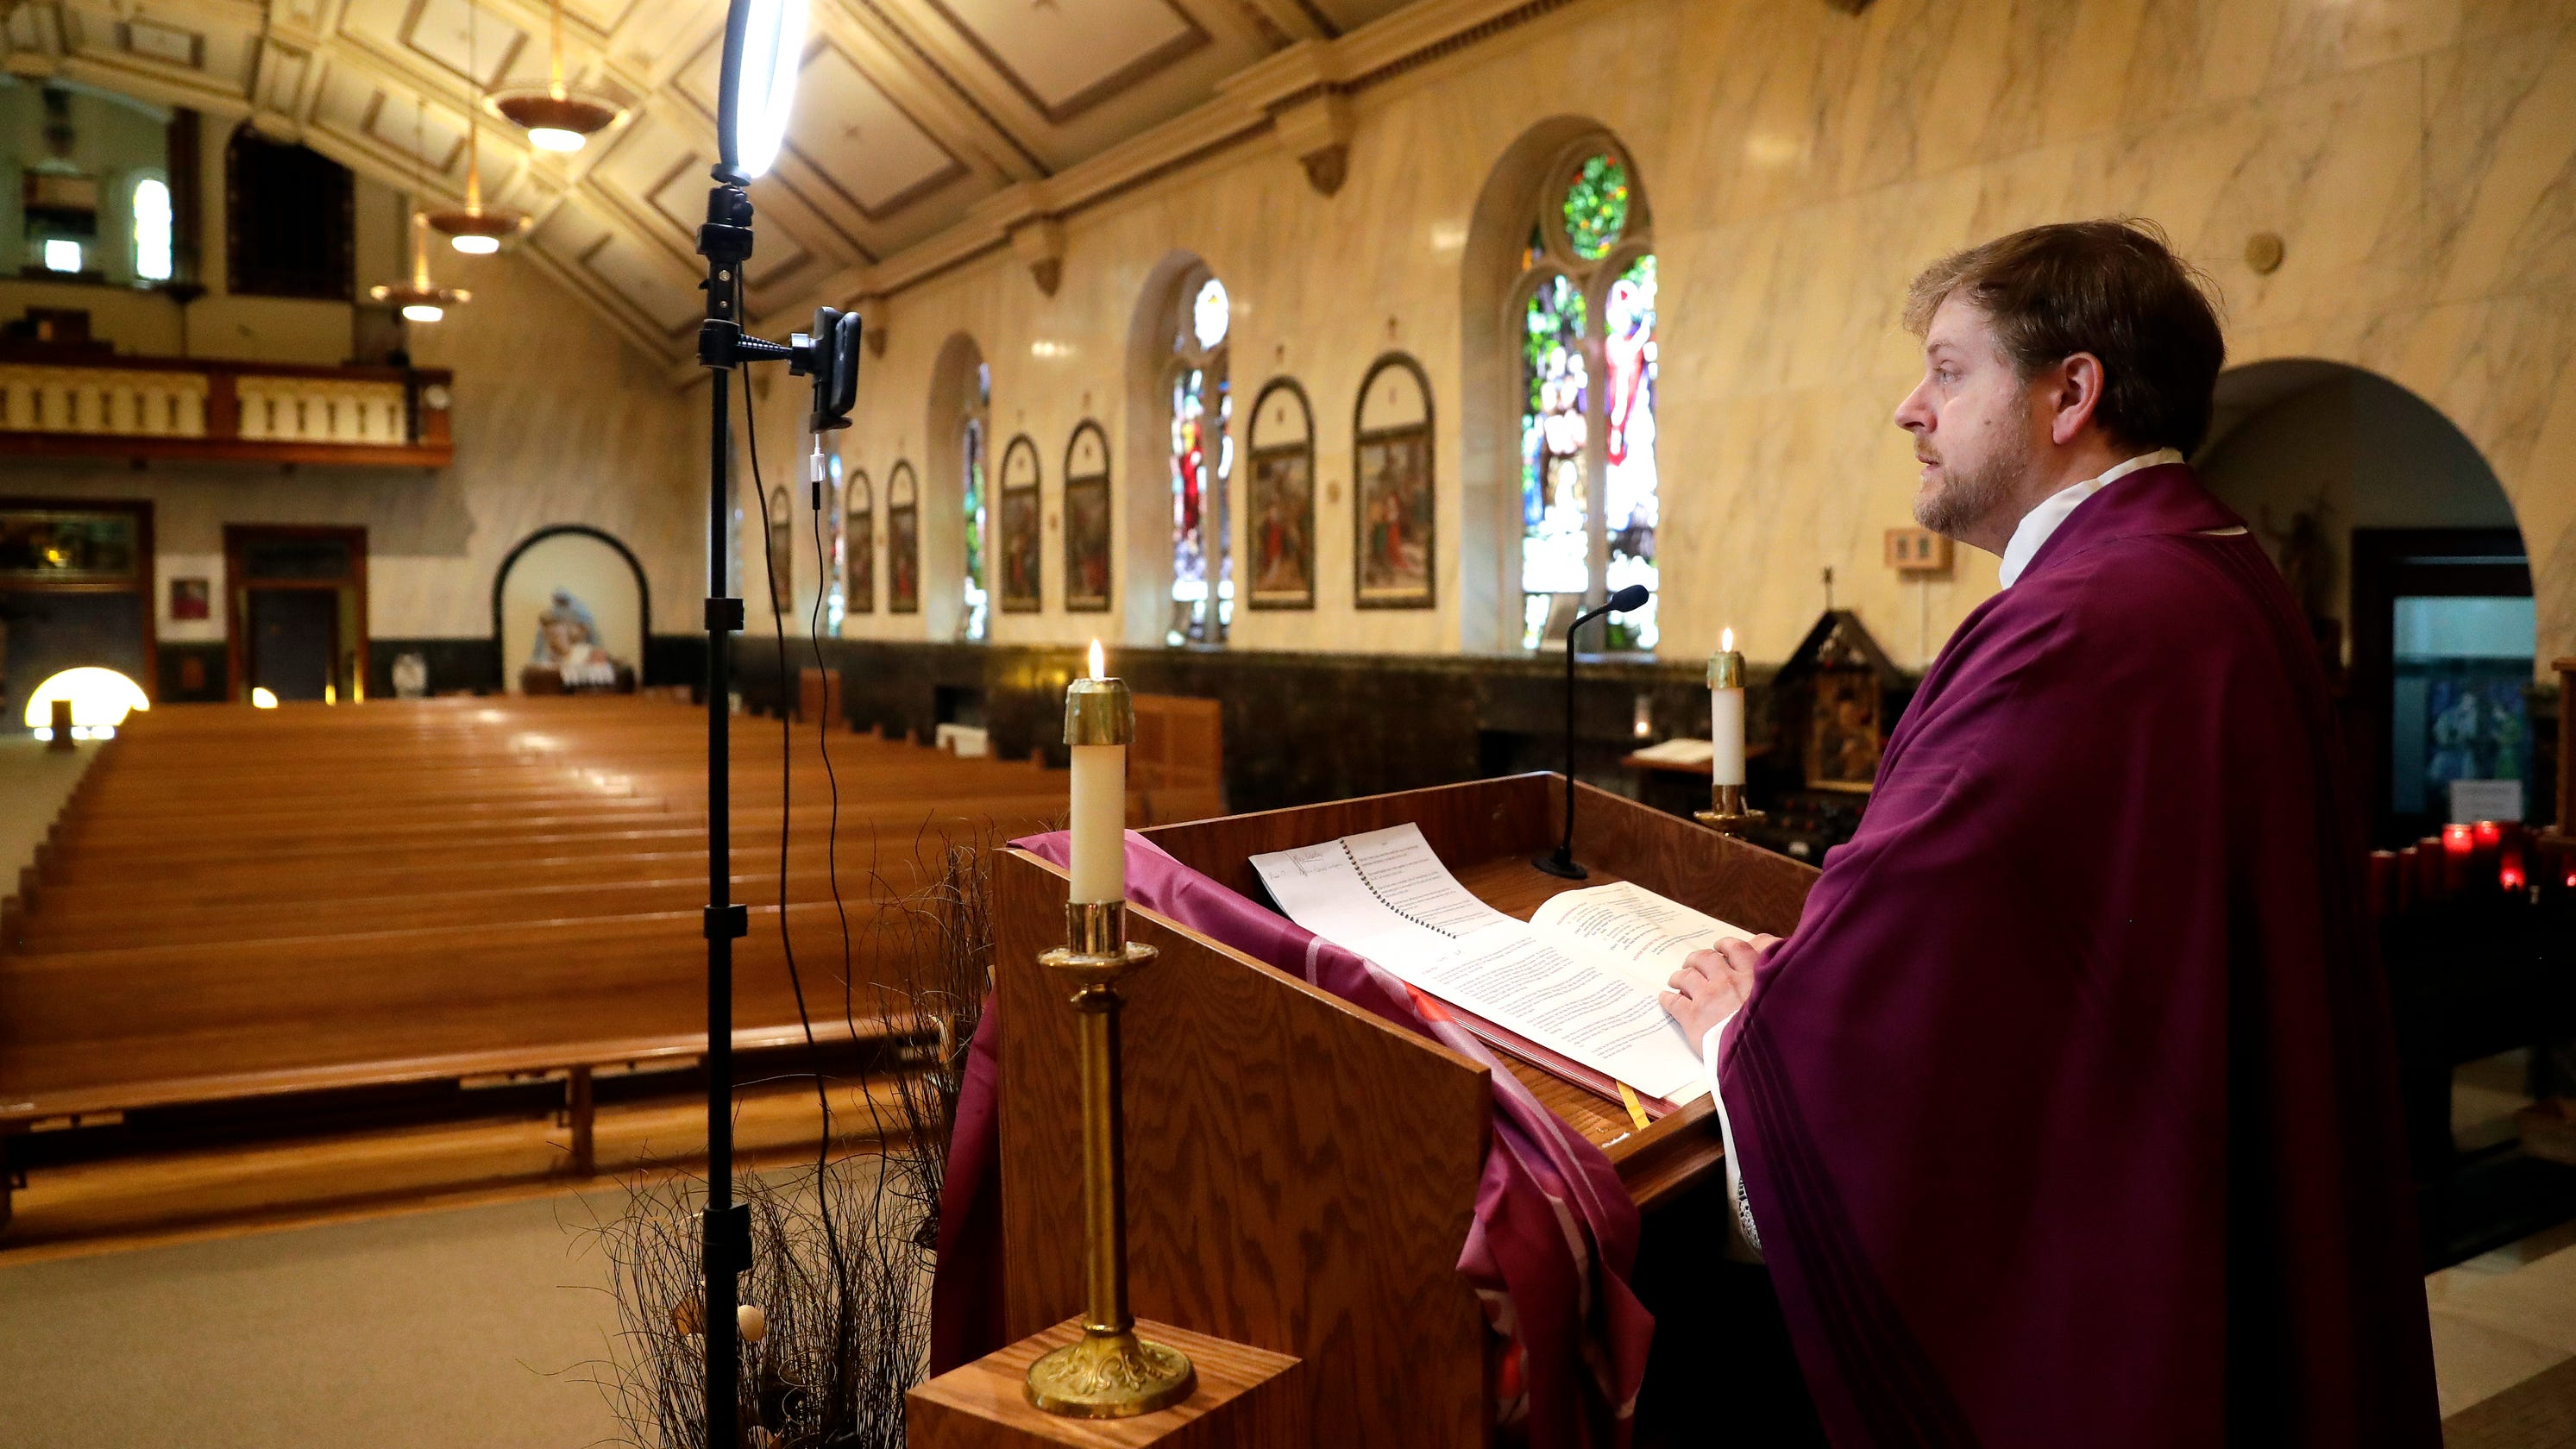 Technology helps churches stay connected, celebrate Easter during coronavirus